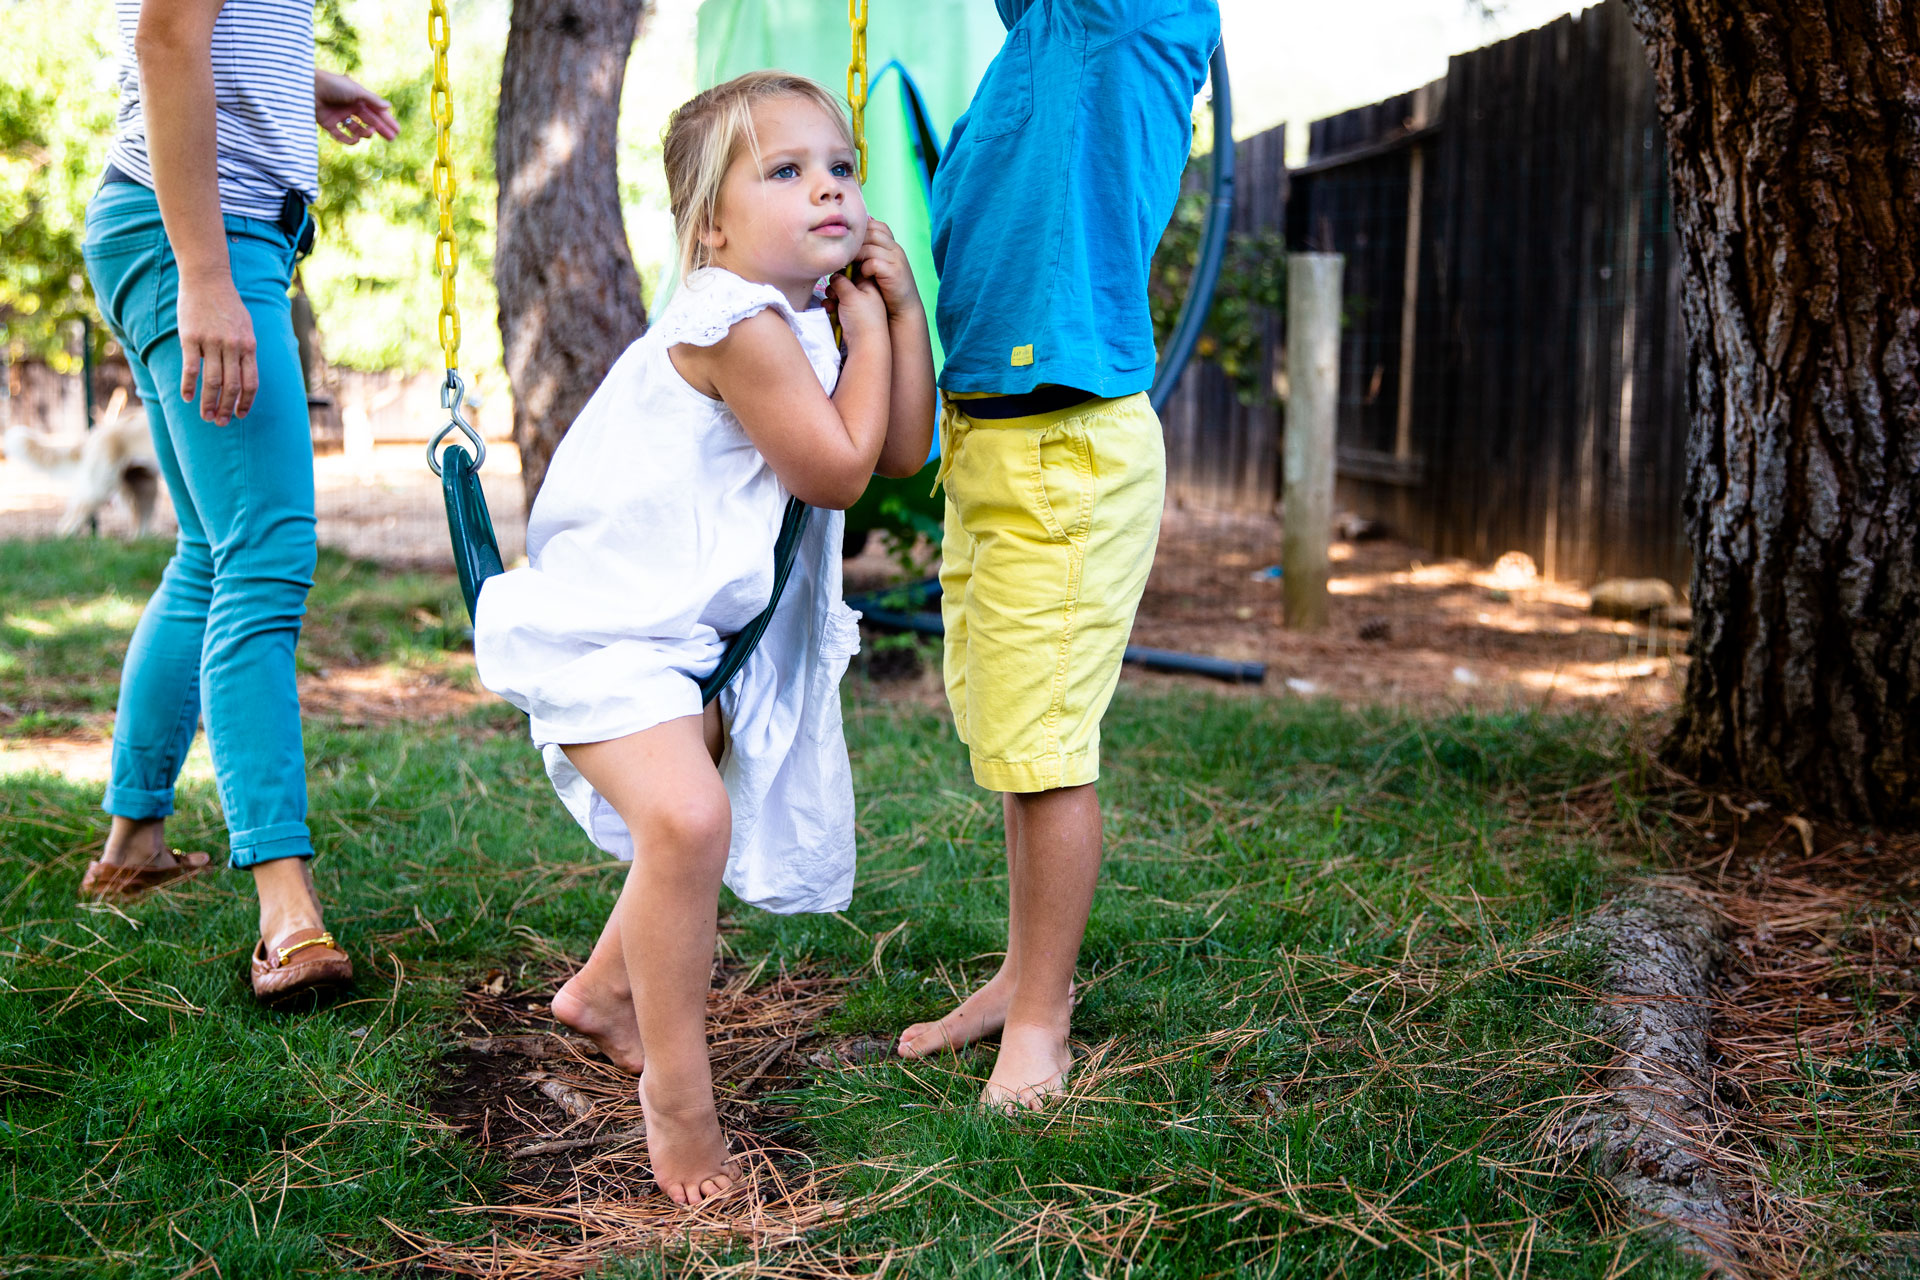 Kids playing in backyard and sister straddling swing